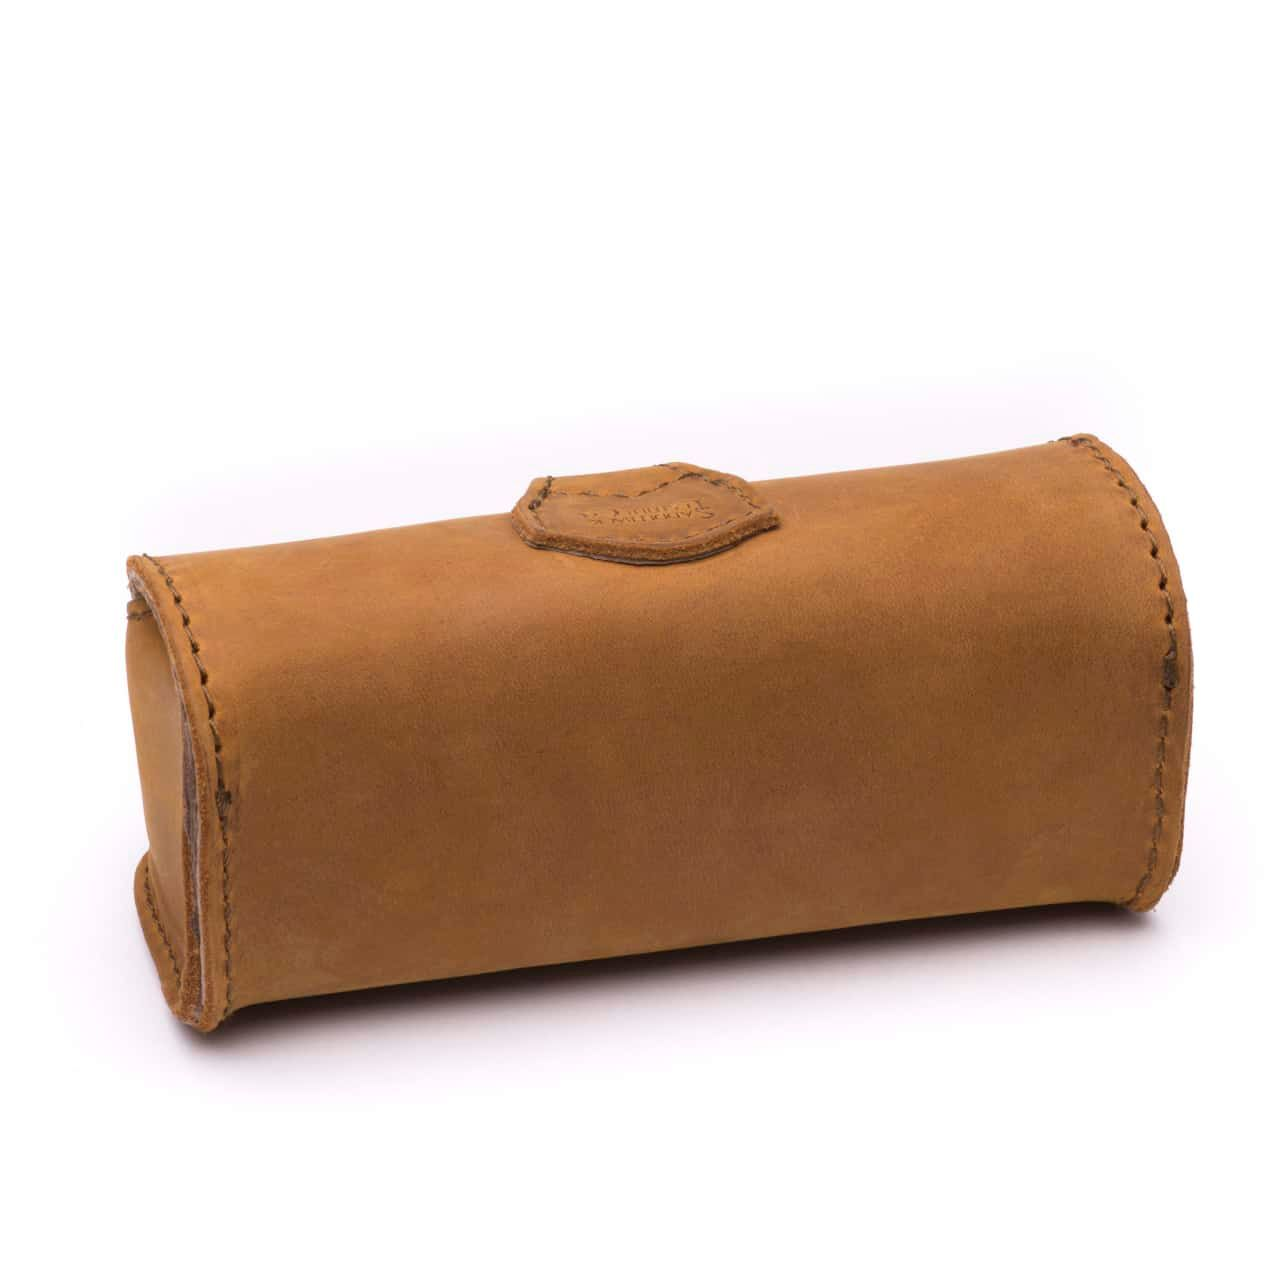 Hard Sunglass Case - Tobacco